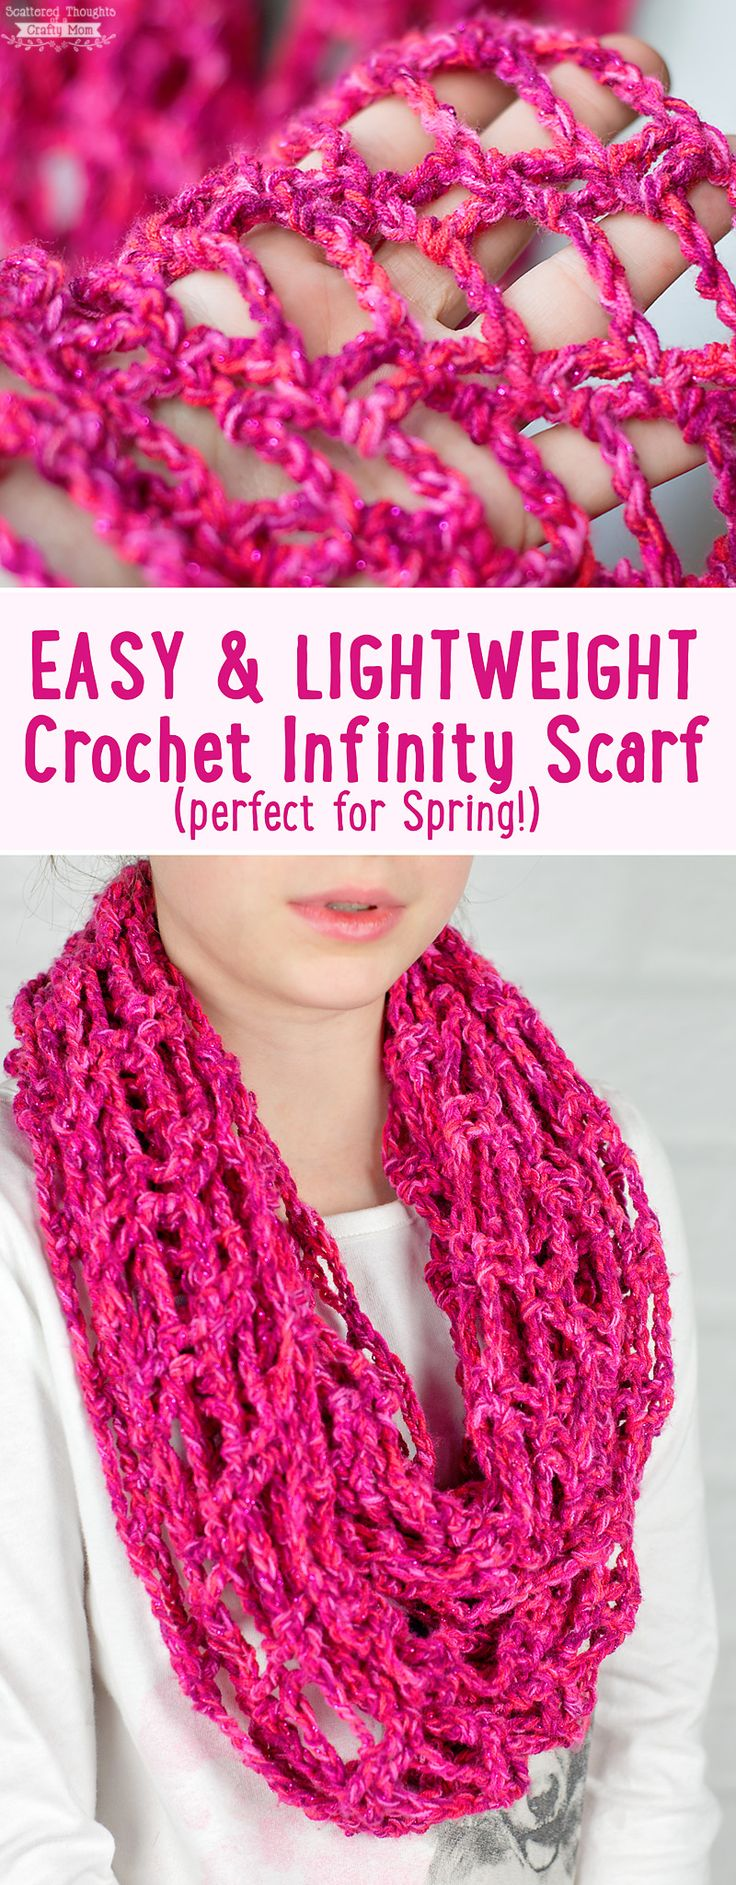 Searching for your next crochet project?  Look no further, this Lightweight Croc…